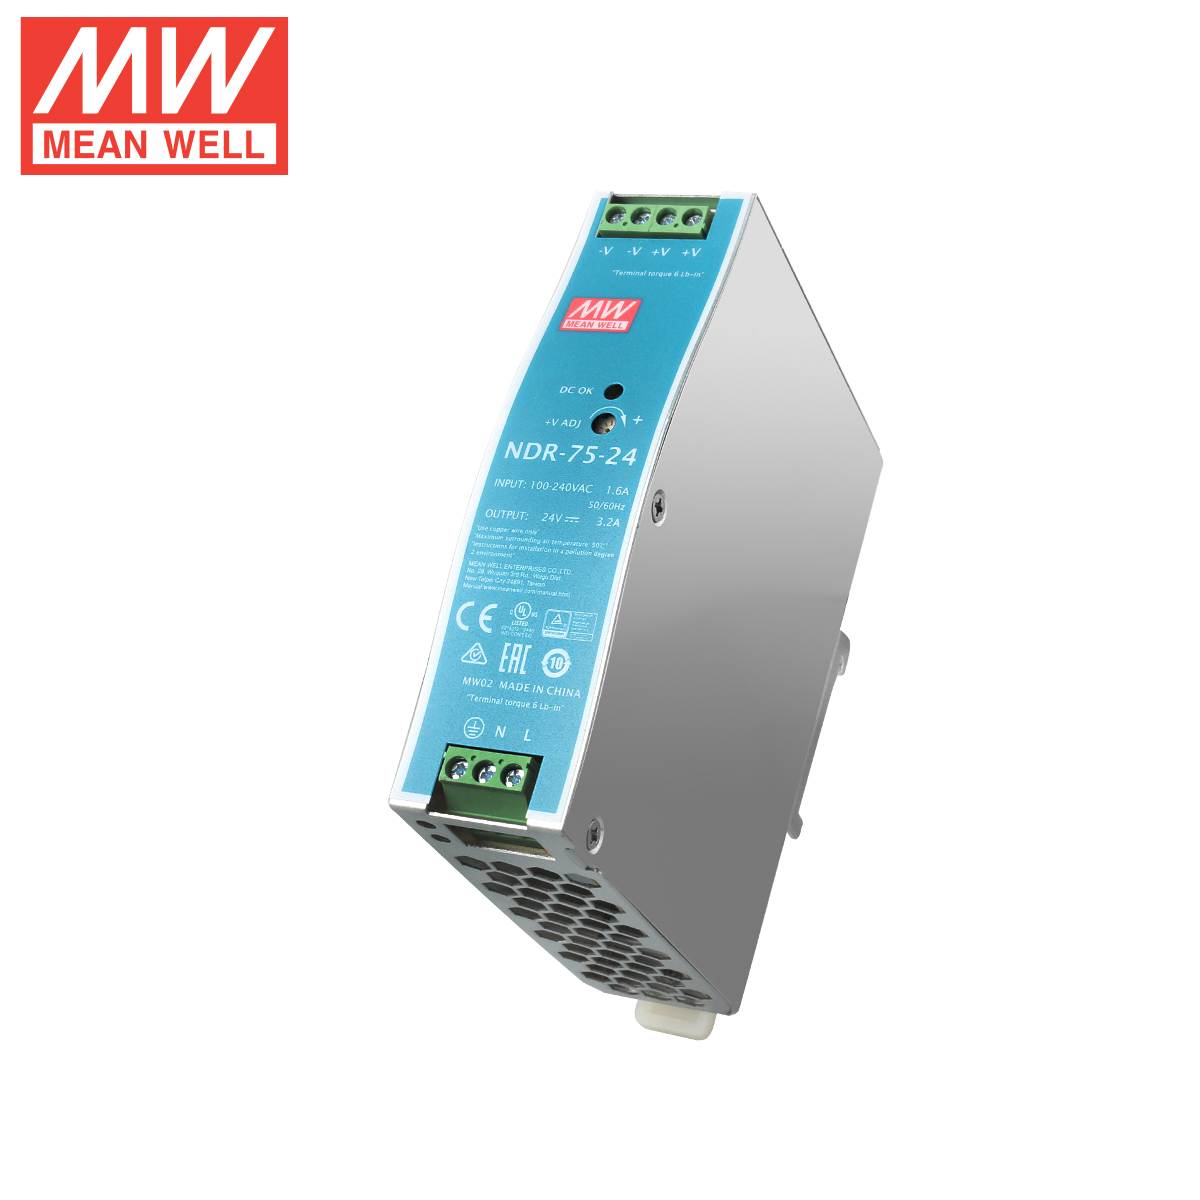 75W 24V Mean Well Power Supply NDR-75-24 meanwell 3.2A 75.W Single Output Industrial DIN Rail Switching Power Supply